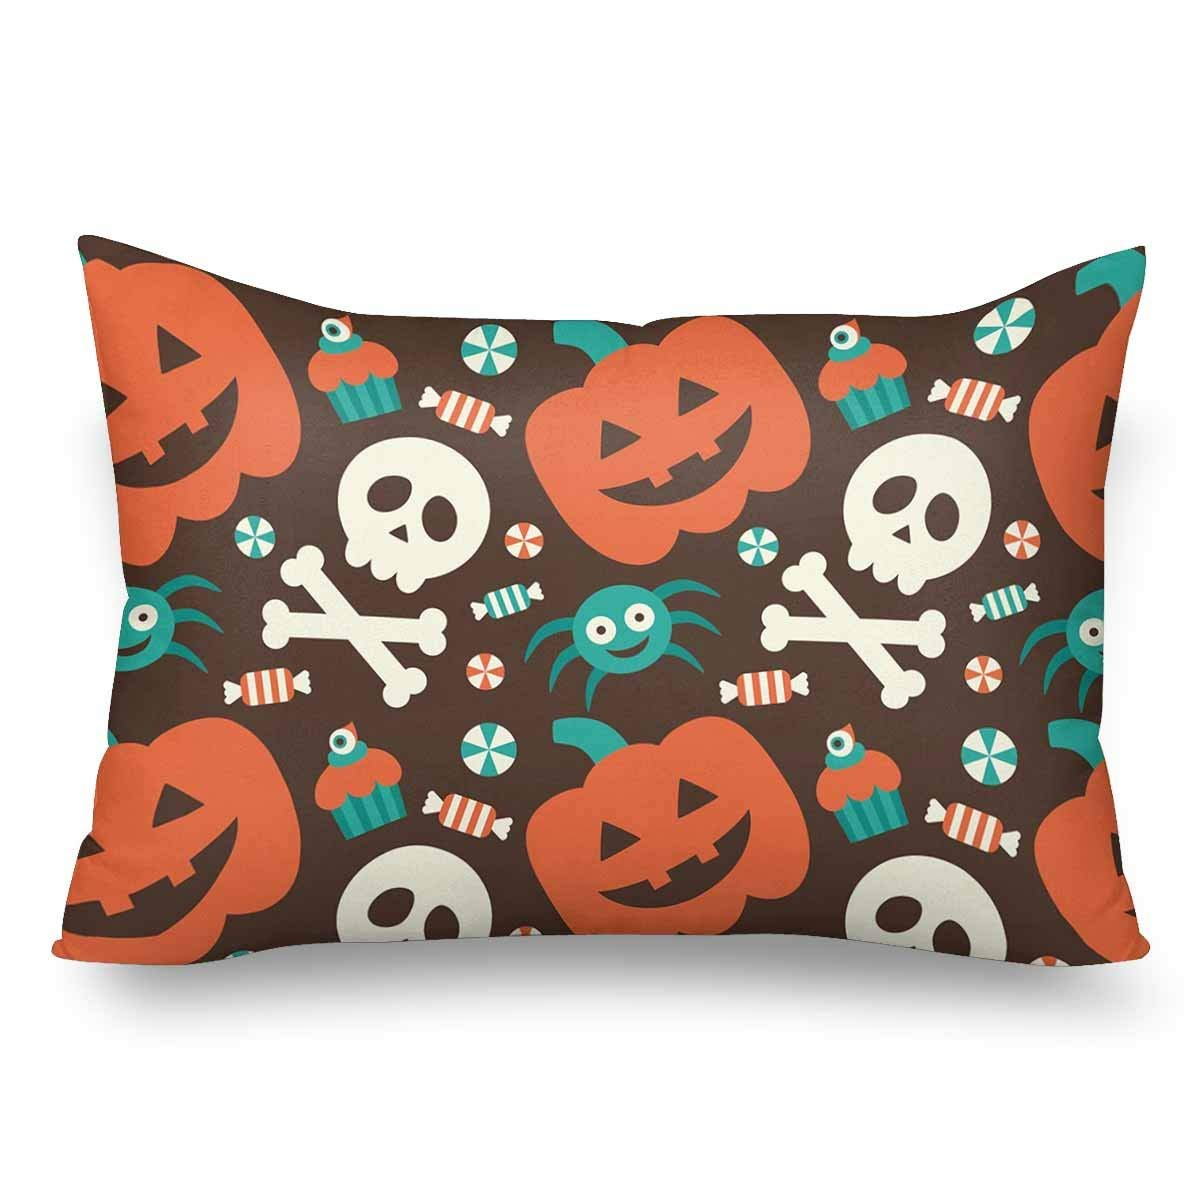 GCKG Halloween Seamless Pattern Pumpkin Skull Spider Candy Pillow Cases Pillowcase 20x30 inches - image 4 of 4